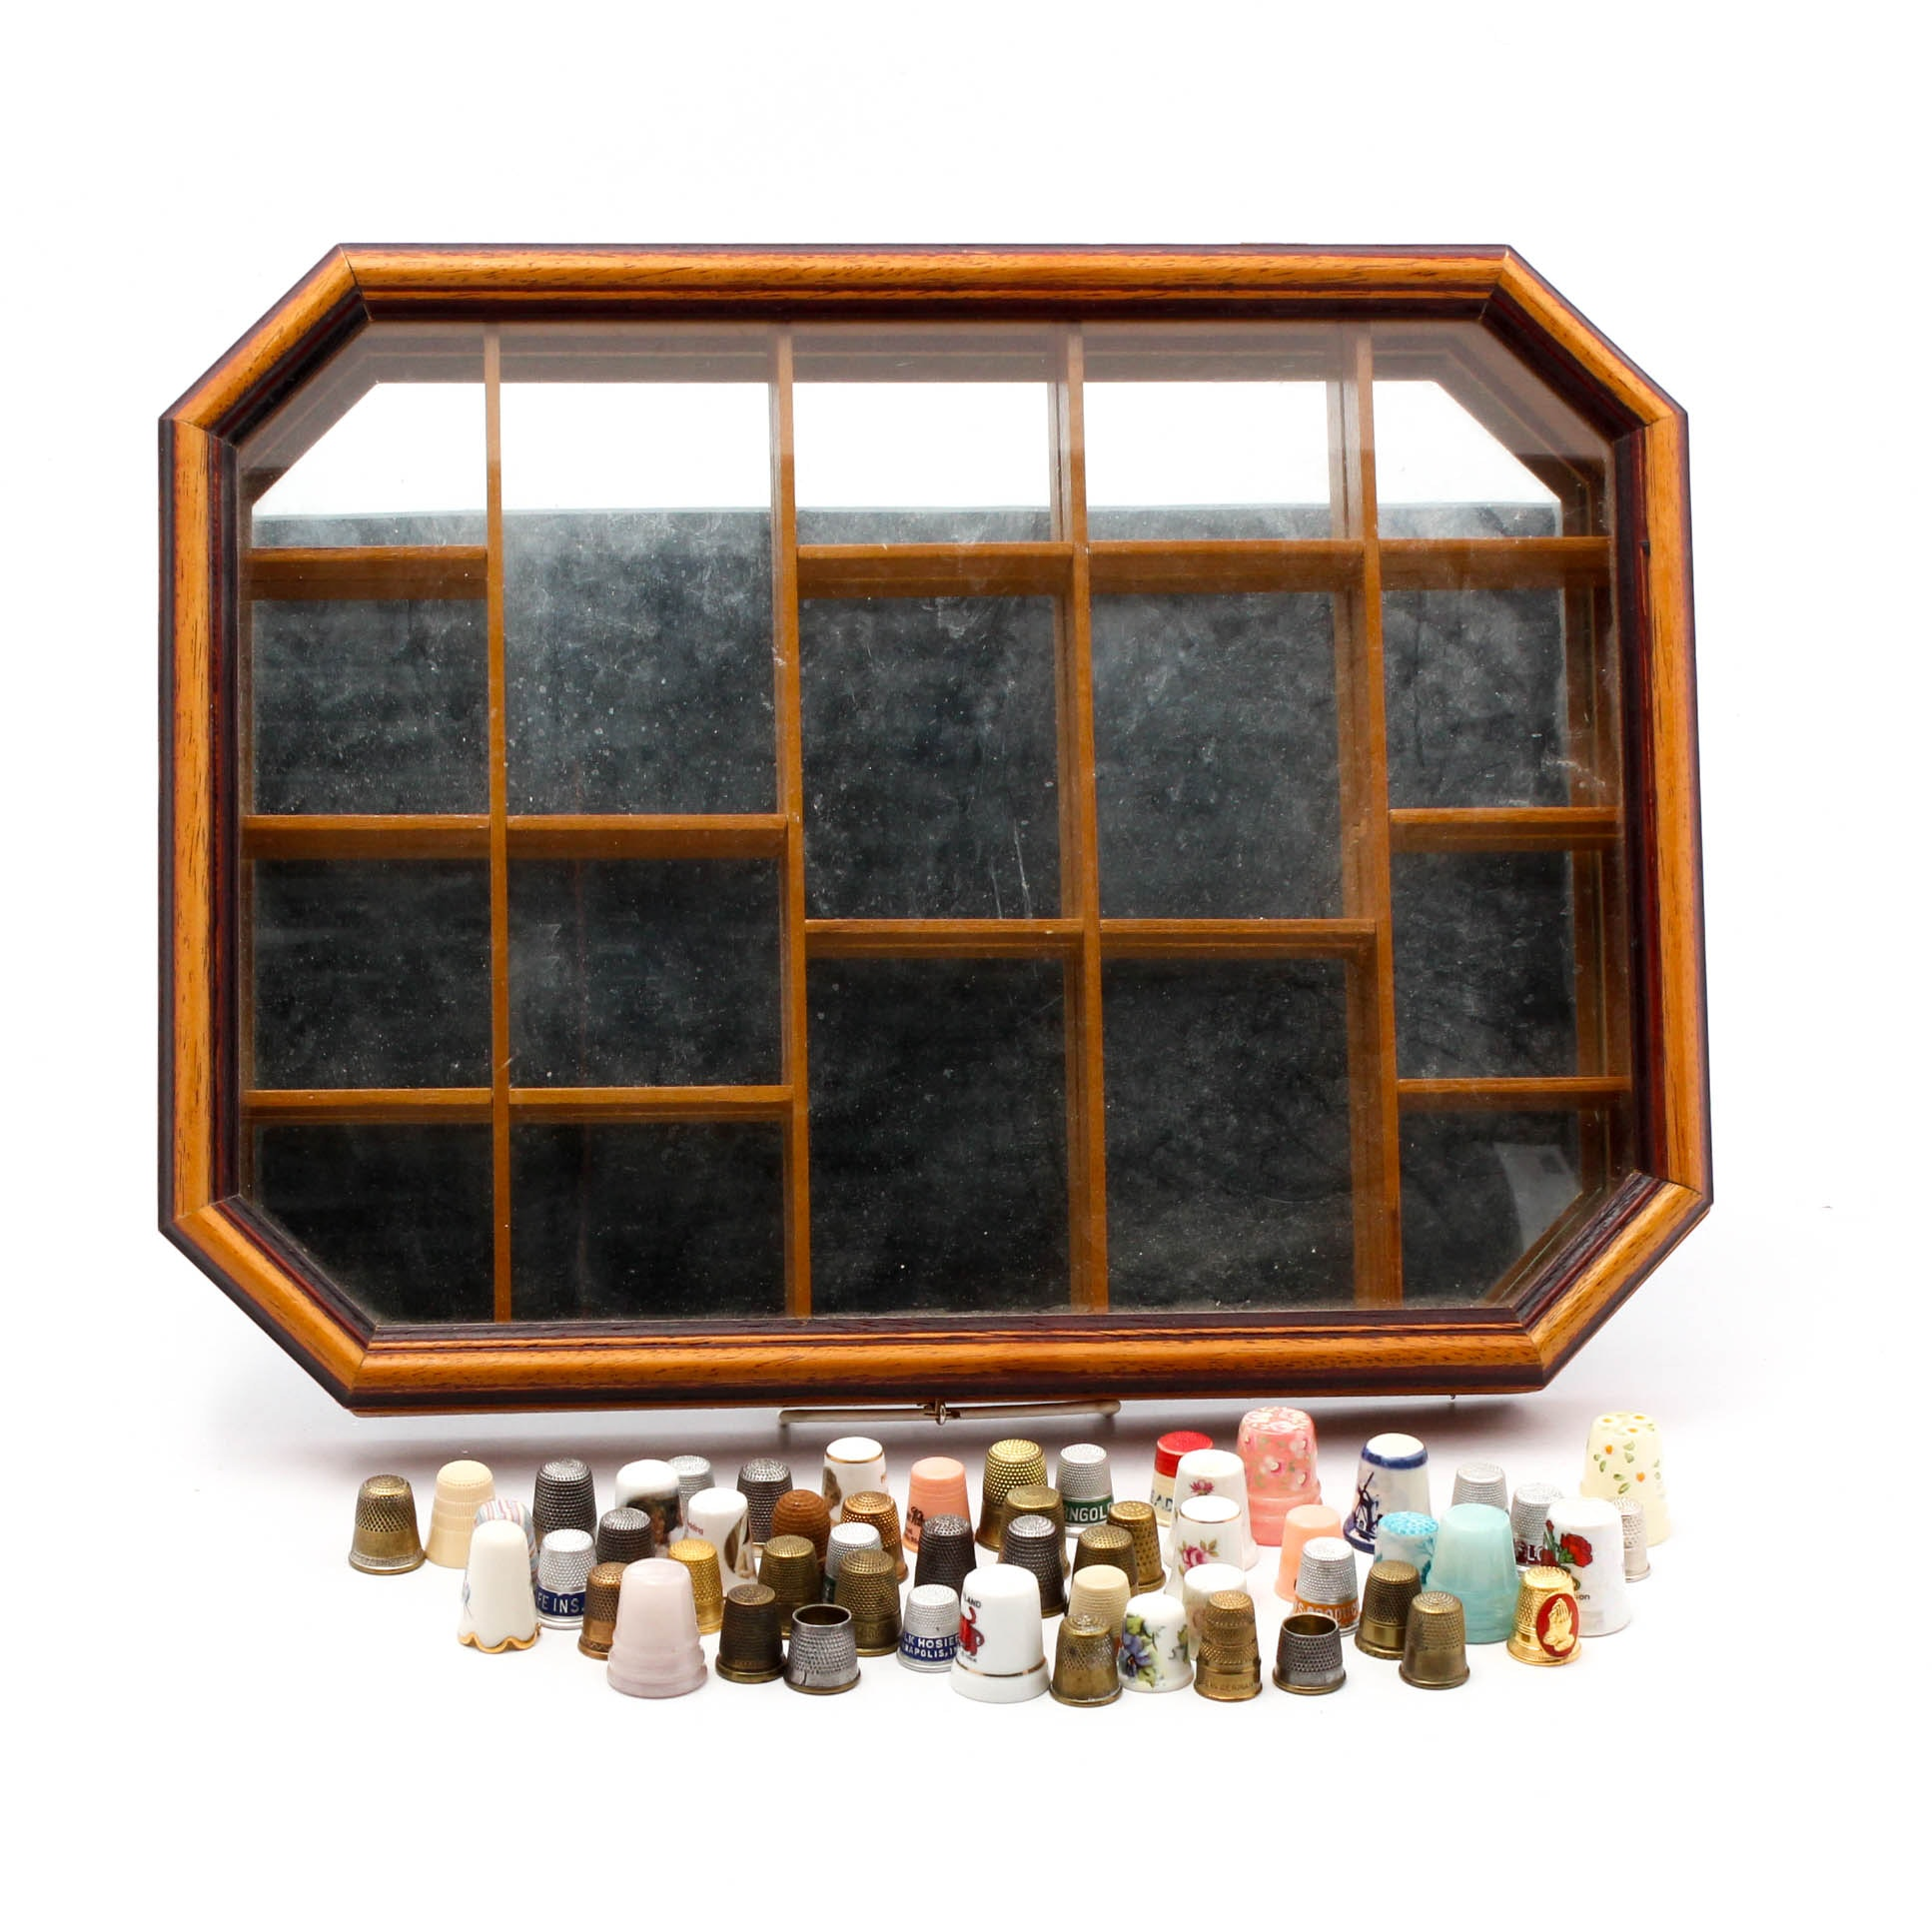 Thimble Collection with Display Case